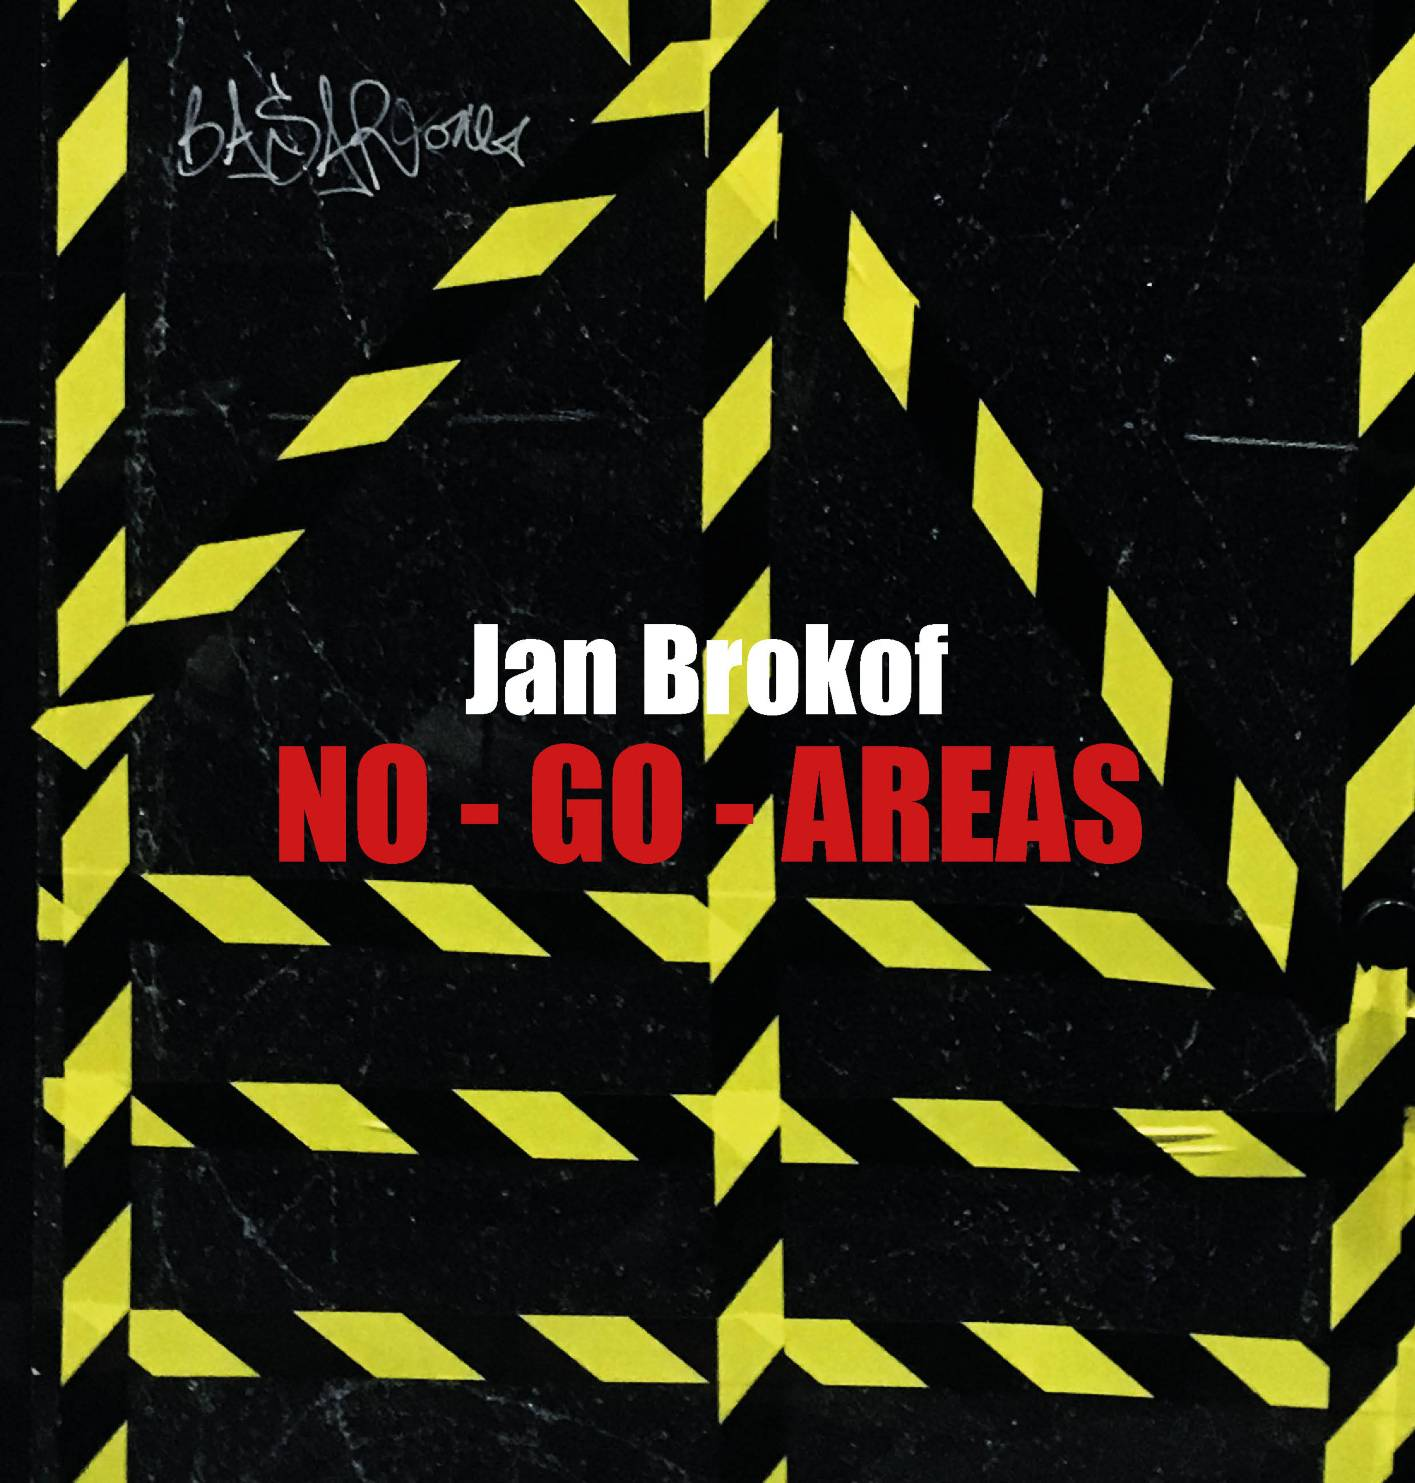 Jan Brokof